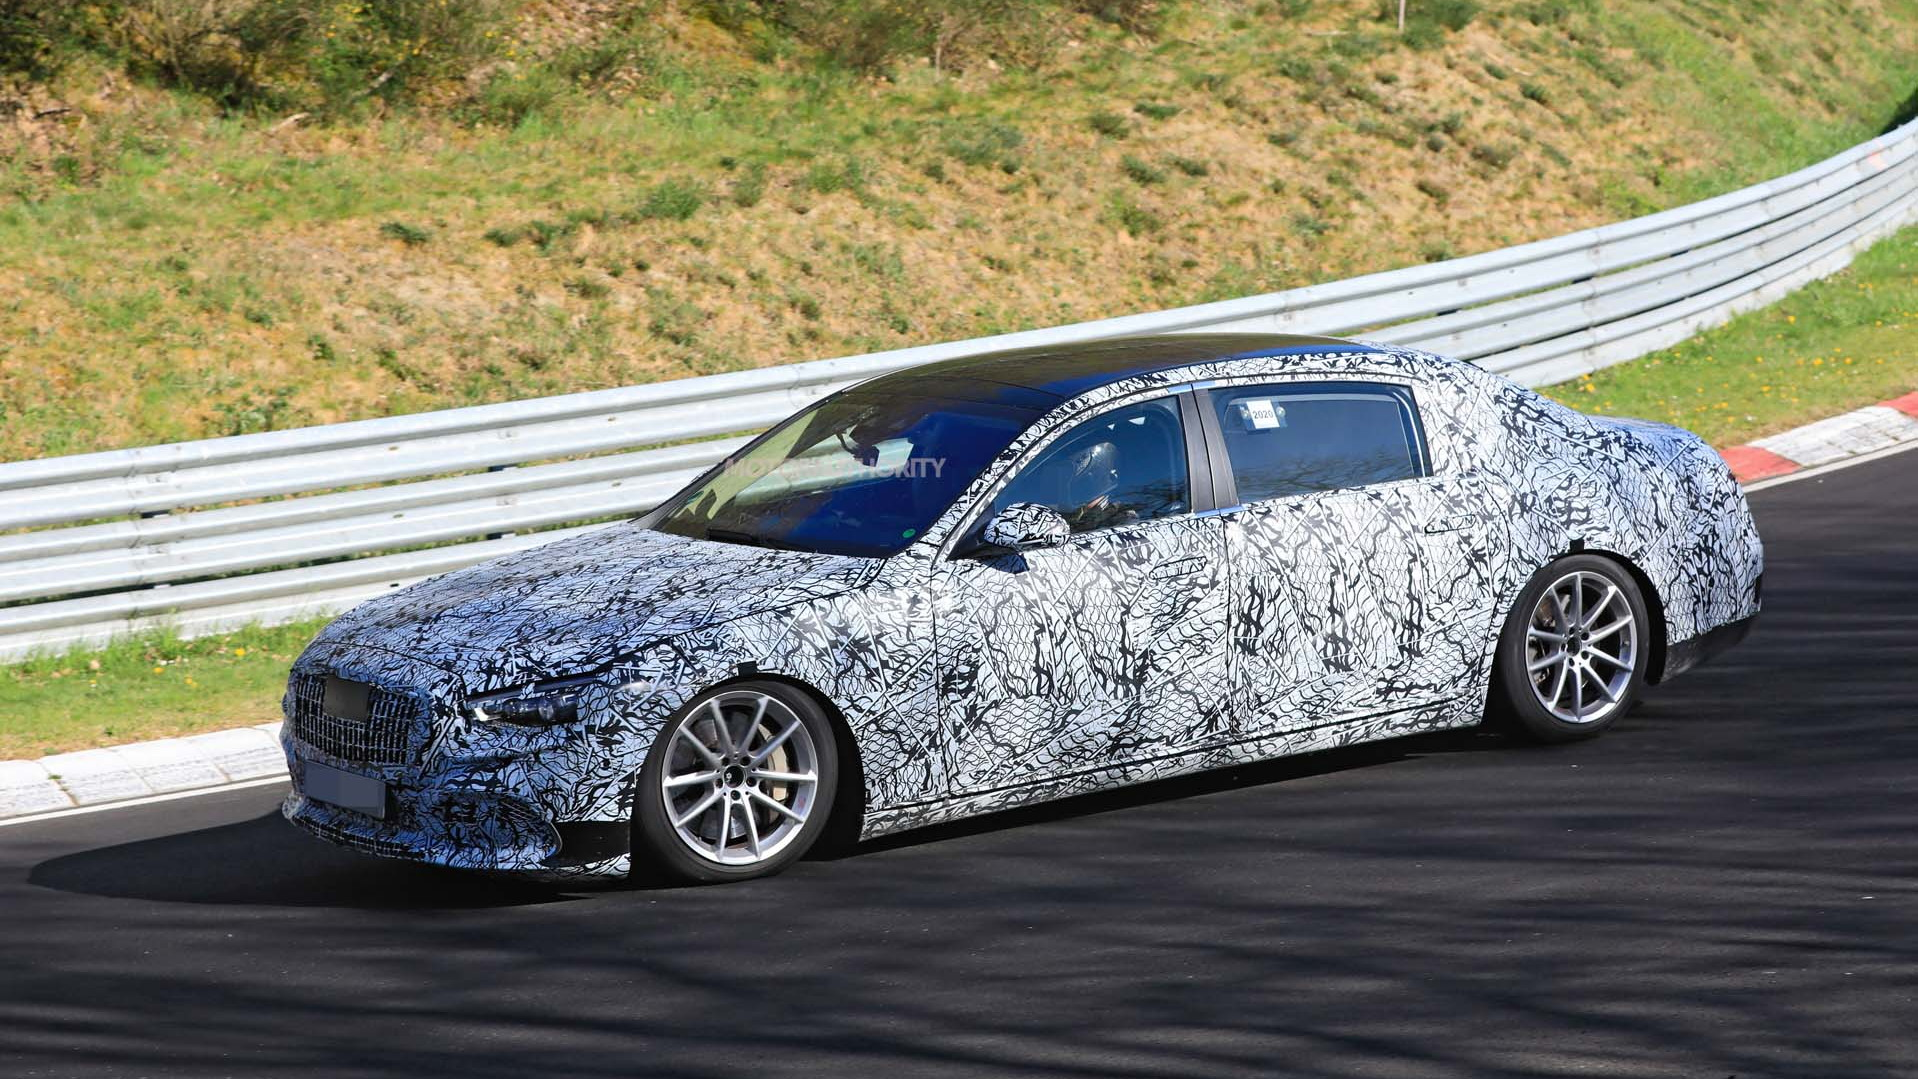 2021 Mercedes-Maybach S-Class spy shots - Photo credit: S. Baldauf/SB-Medien